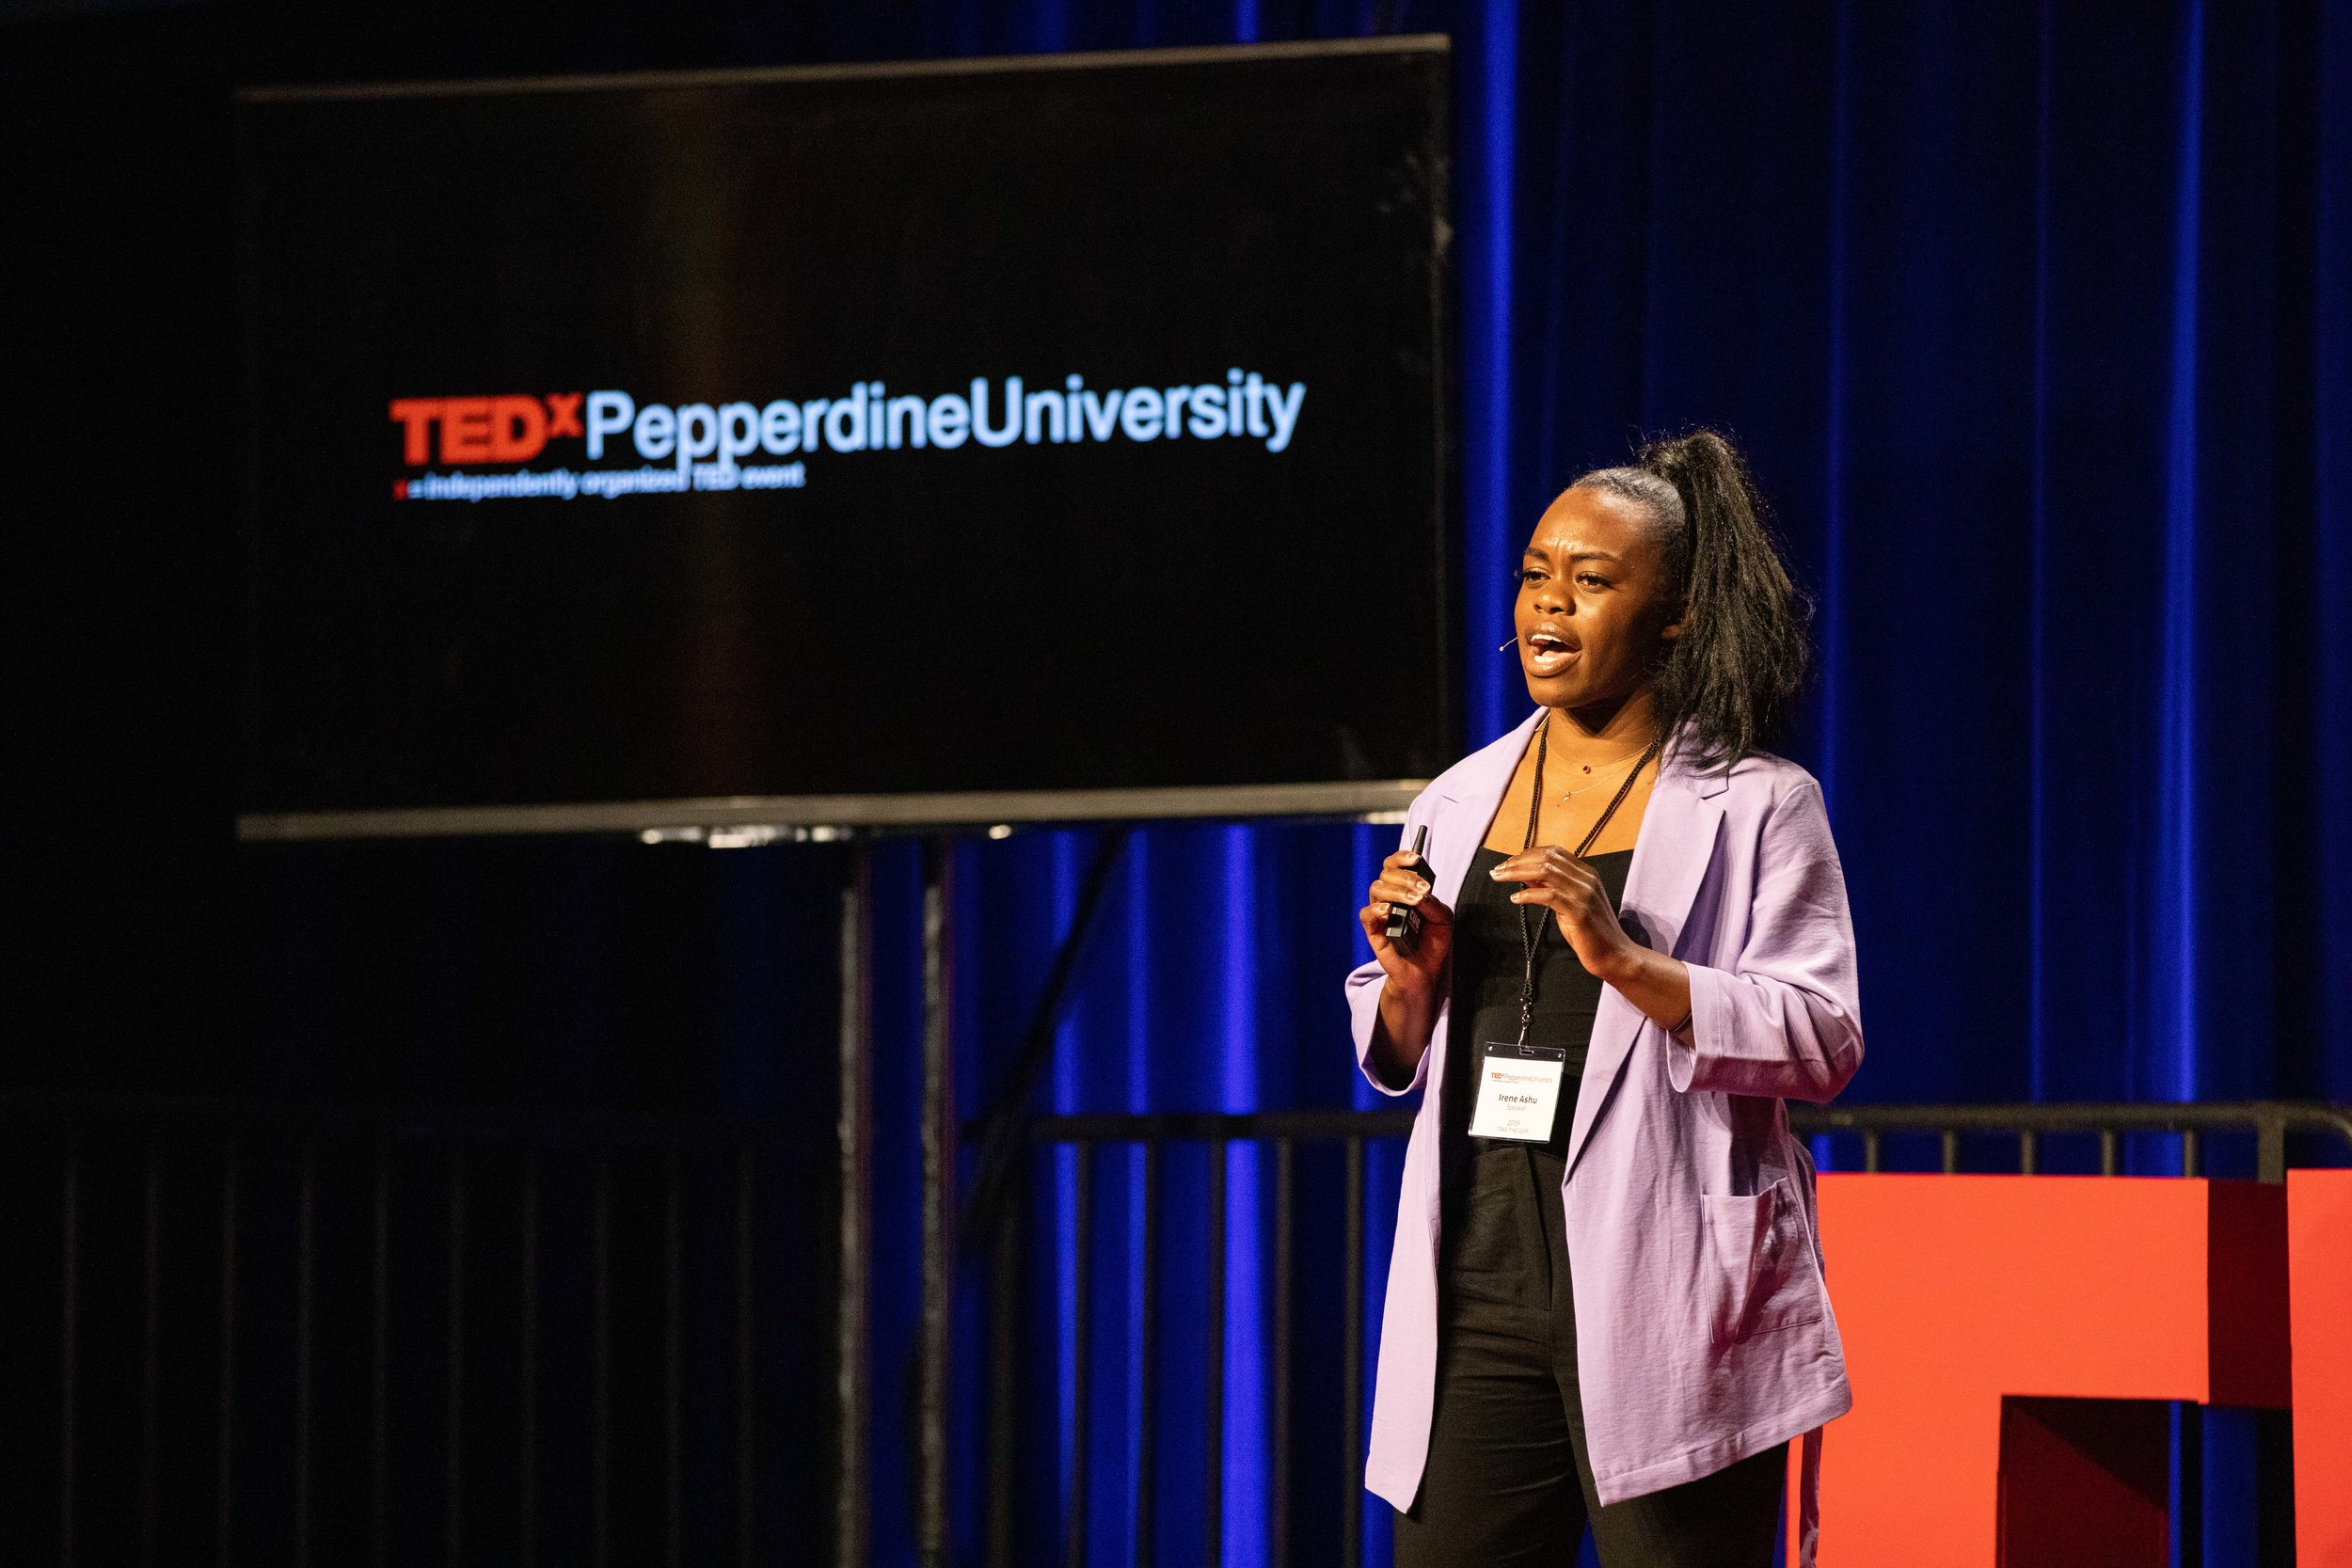 "Irene Ashu  is a director, producer, choreographer and dancer, but she said TEDxPepperdineUniversity will be her first larger speaking engagement.""I've always danced on stage but never spoke,"" Ashu said. ""The theme is 'Taking a Leap' and this is also me taking a leap myself.""  http://pepperdine-graphic.com/tedxpepperdine-speakers-give-sneak-peek-of-speeches/"